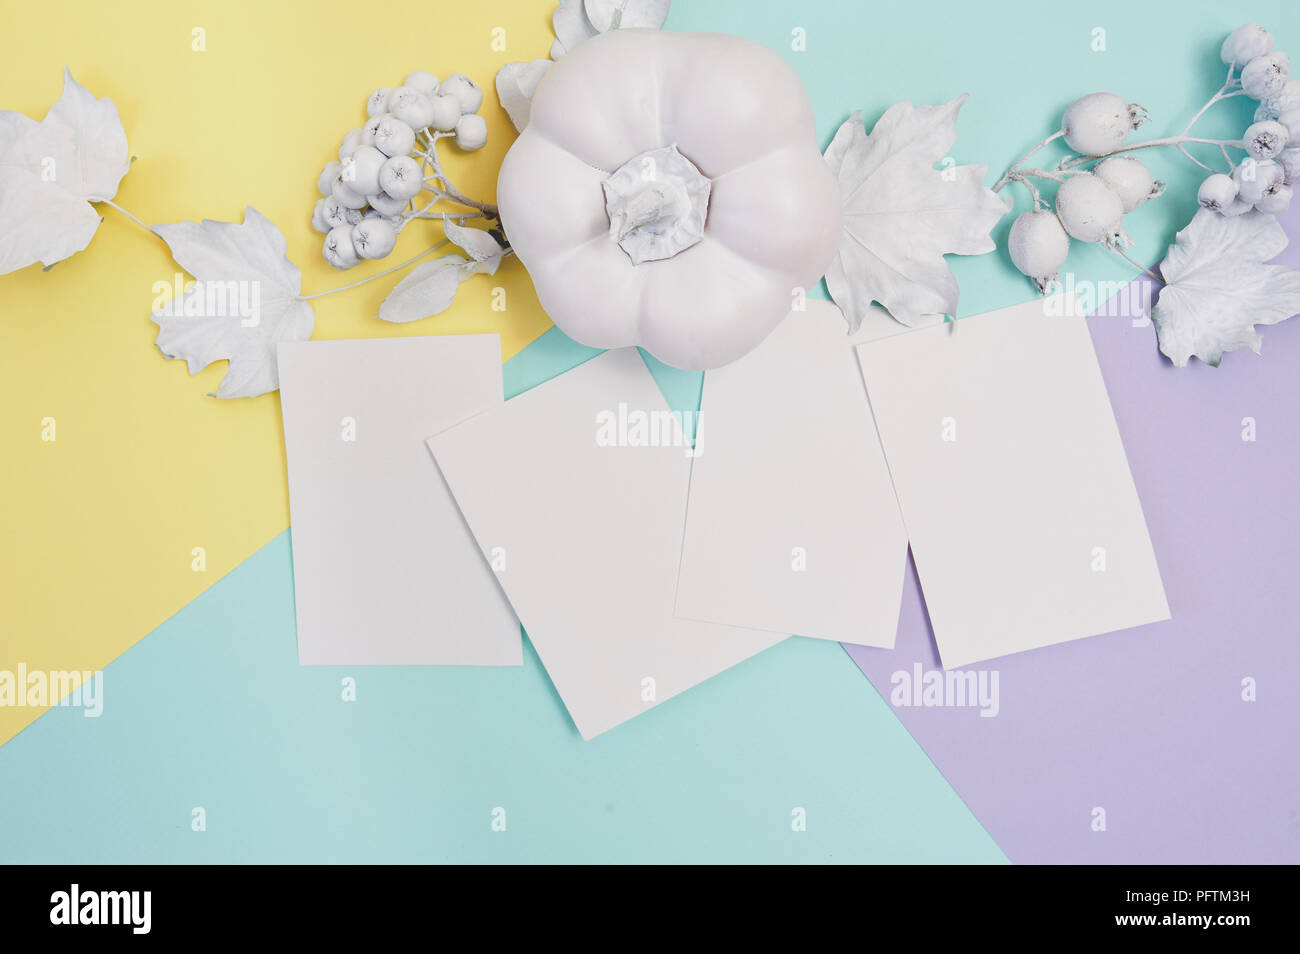 Pumpkin Berries And Leaves With White Frame Mockup On A Multicolor